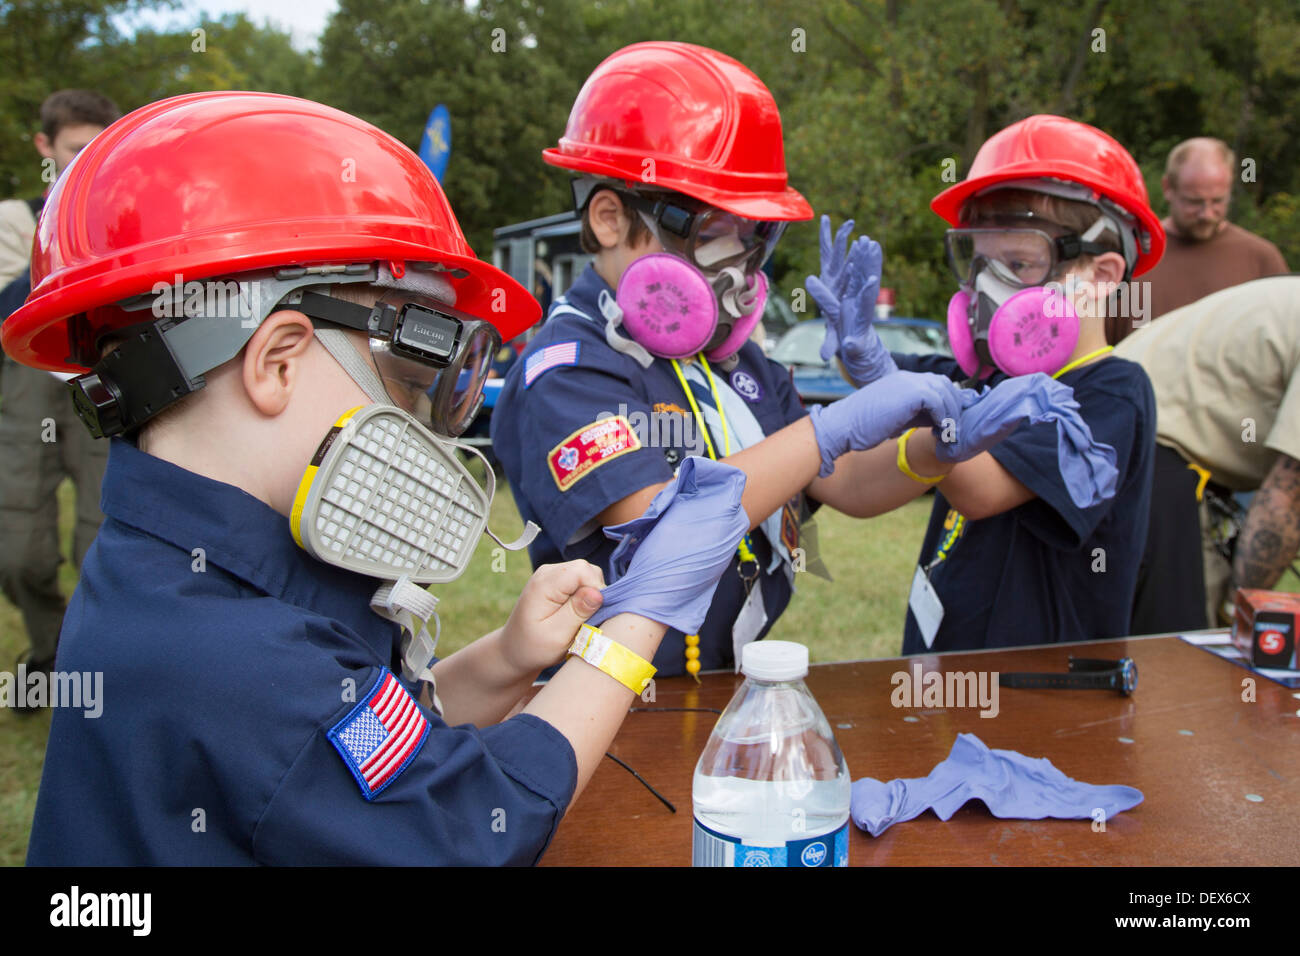 Cub Scouts try on crime-scene evidence gathering gear used by the Michigan State Police at a Scout gathering. - Stock Image